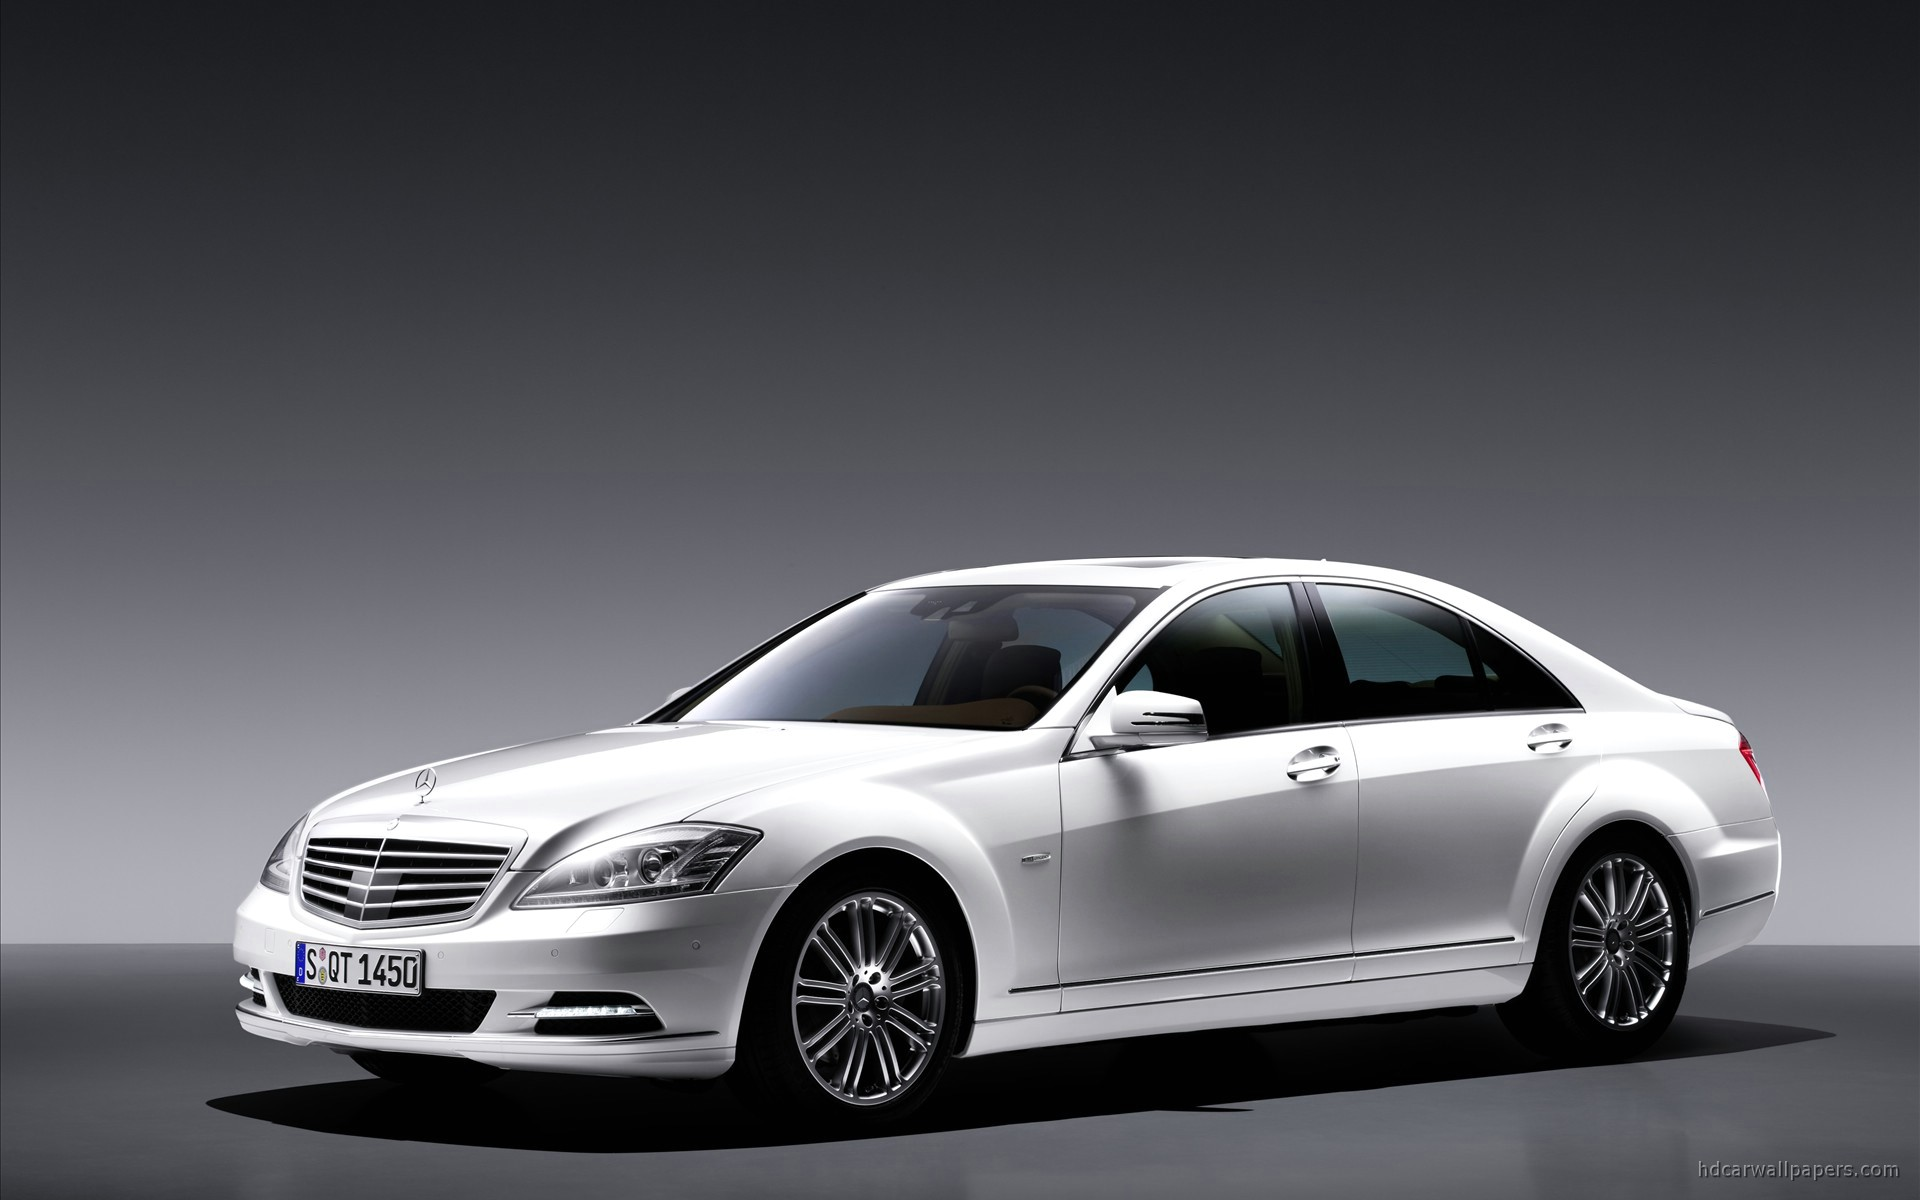 2010 mercedes benz s class wallpaper hd car wallpapers for Mercedes benz s class amg 2010